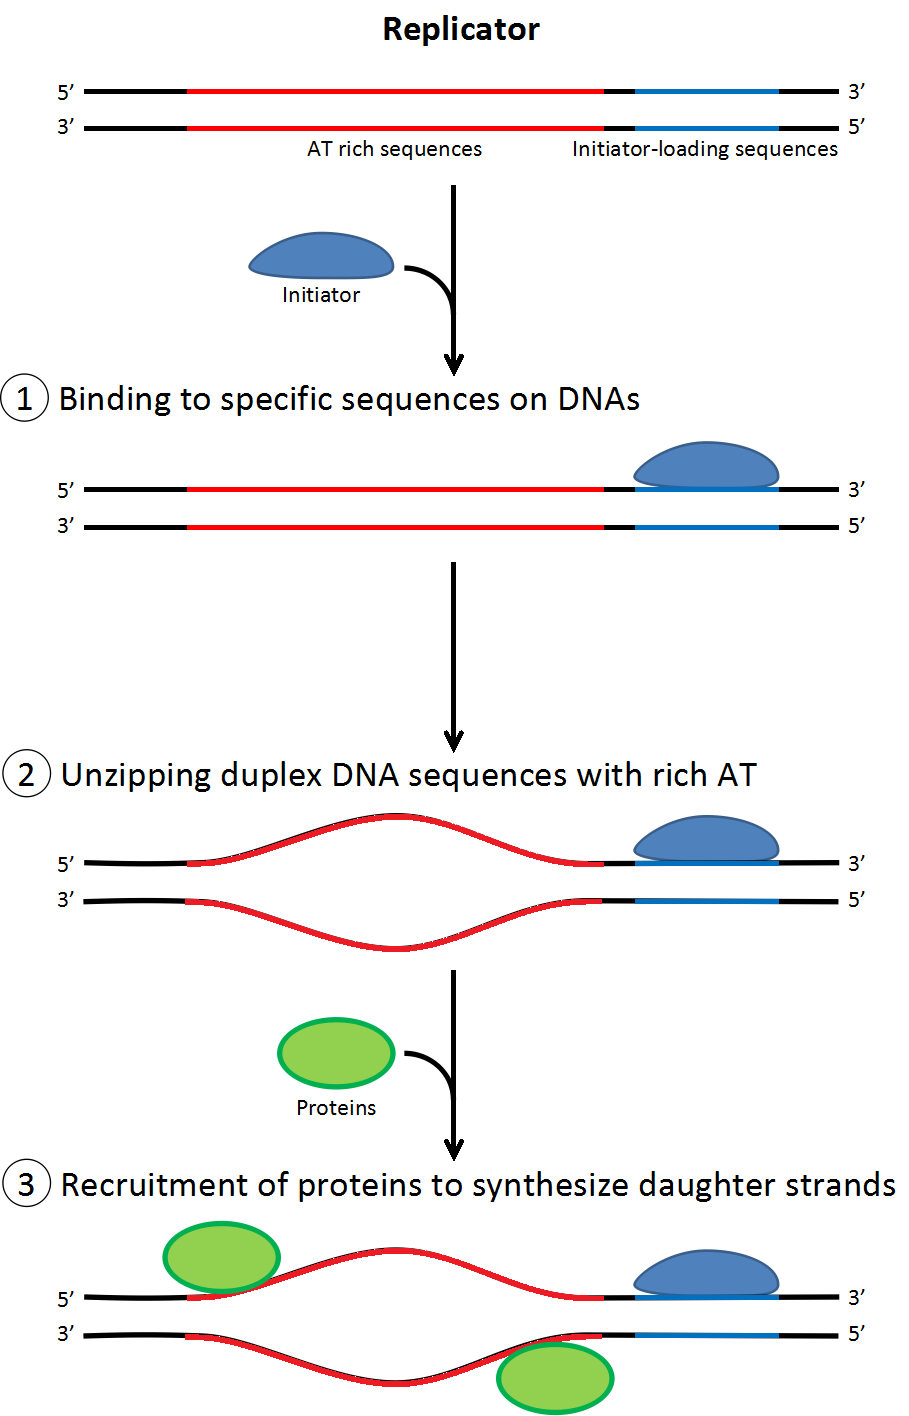 dna replication at the Flow of genetic information kit© dna replication continued flow of genetic information kit© dna replication continued flow of genetic information kit.